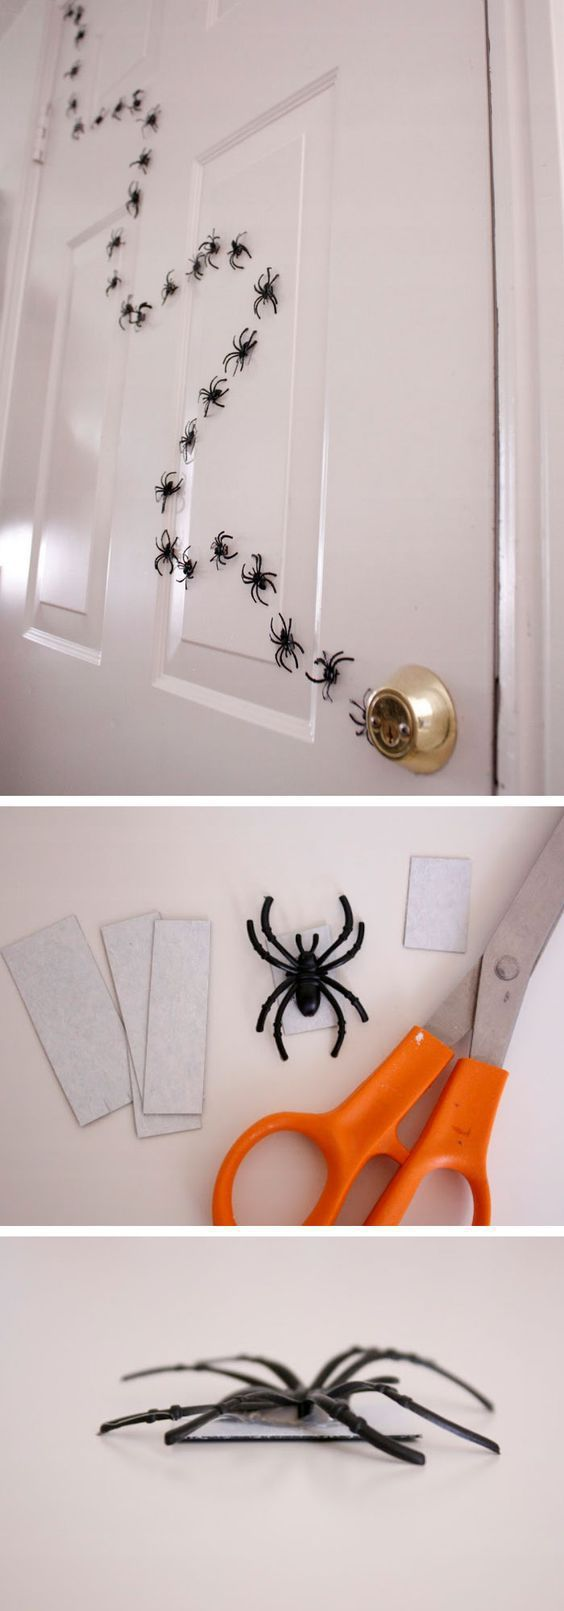 Best Halloween Decorating Ideas Ideas On Pinterest Diy - Best diy halloween outdoor decorations